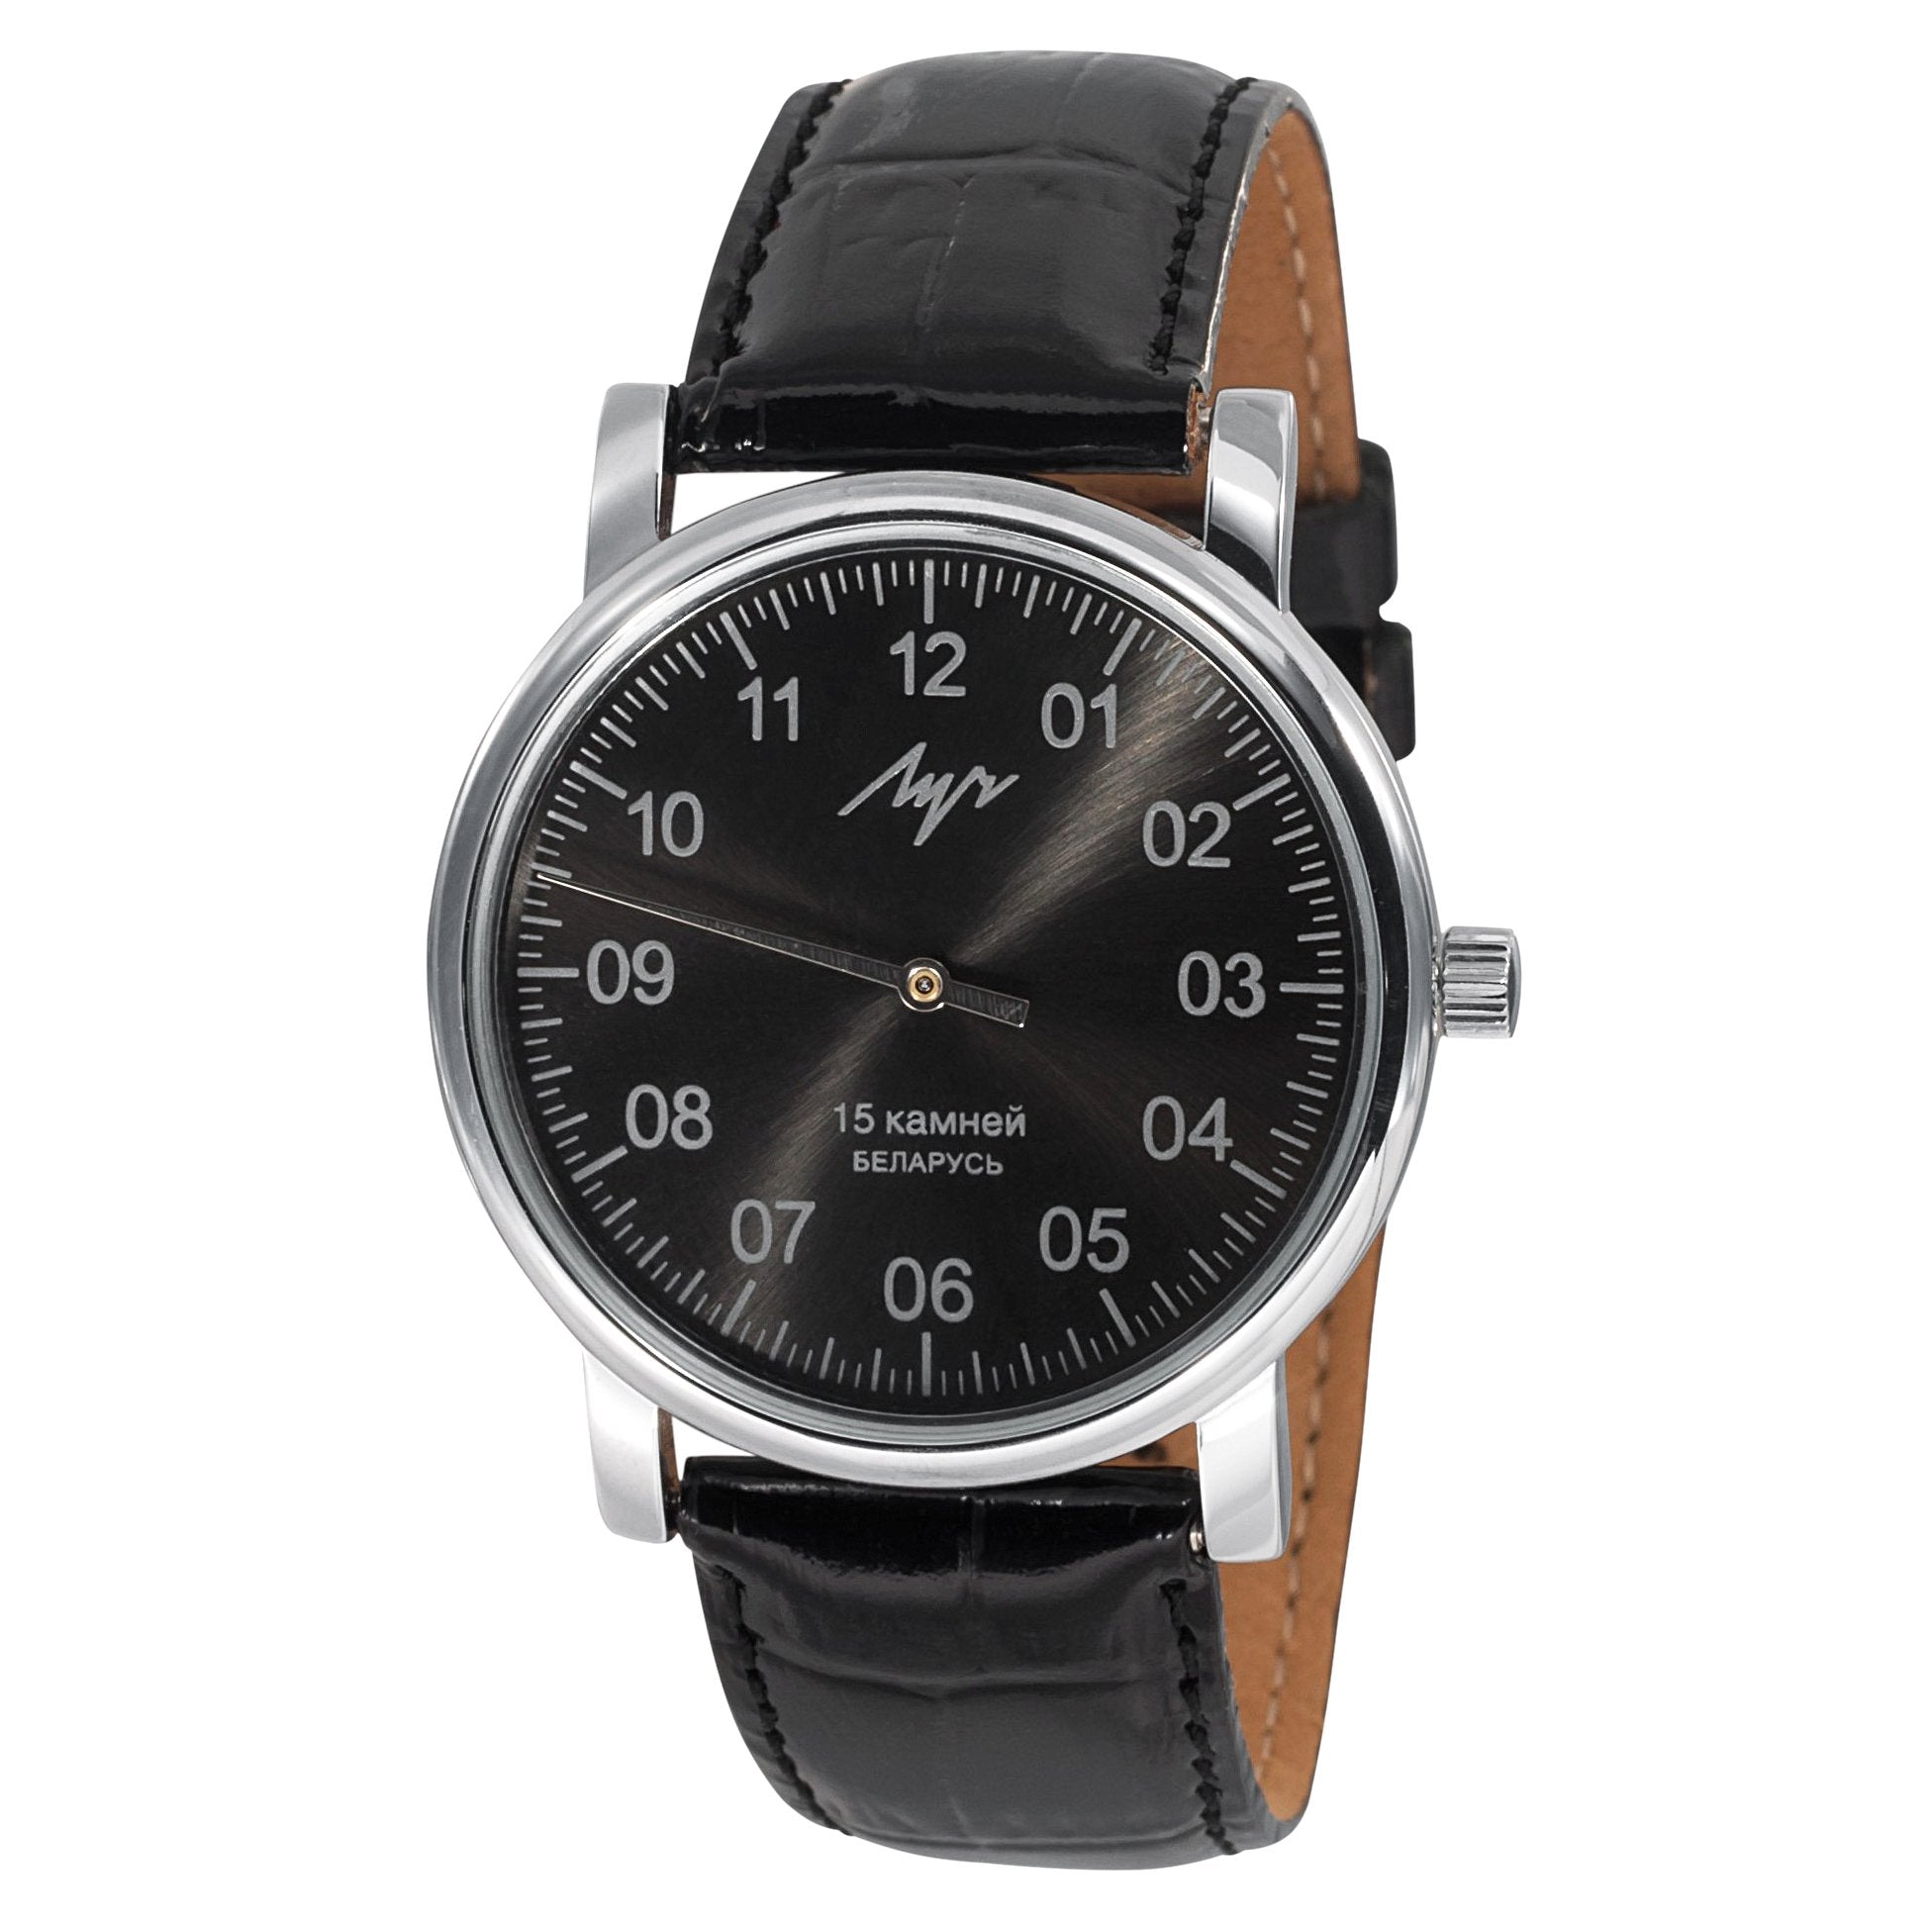 Luch Handwinding One-Handed Watch - 37471763